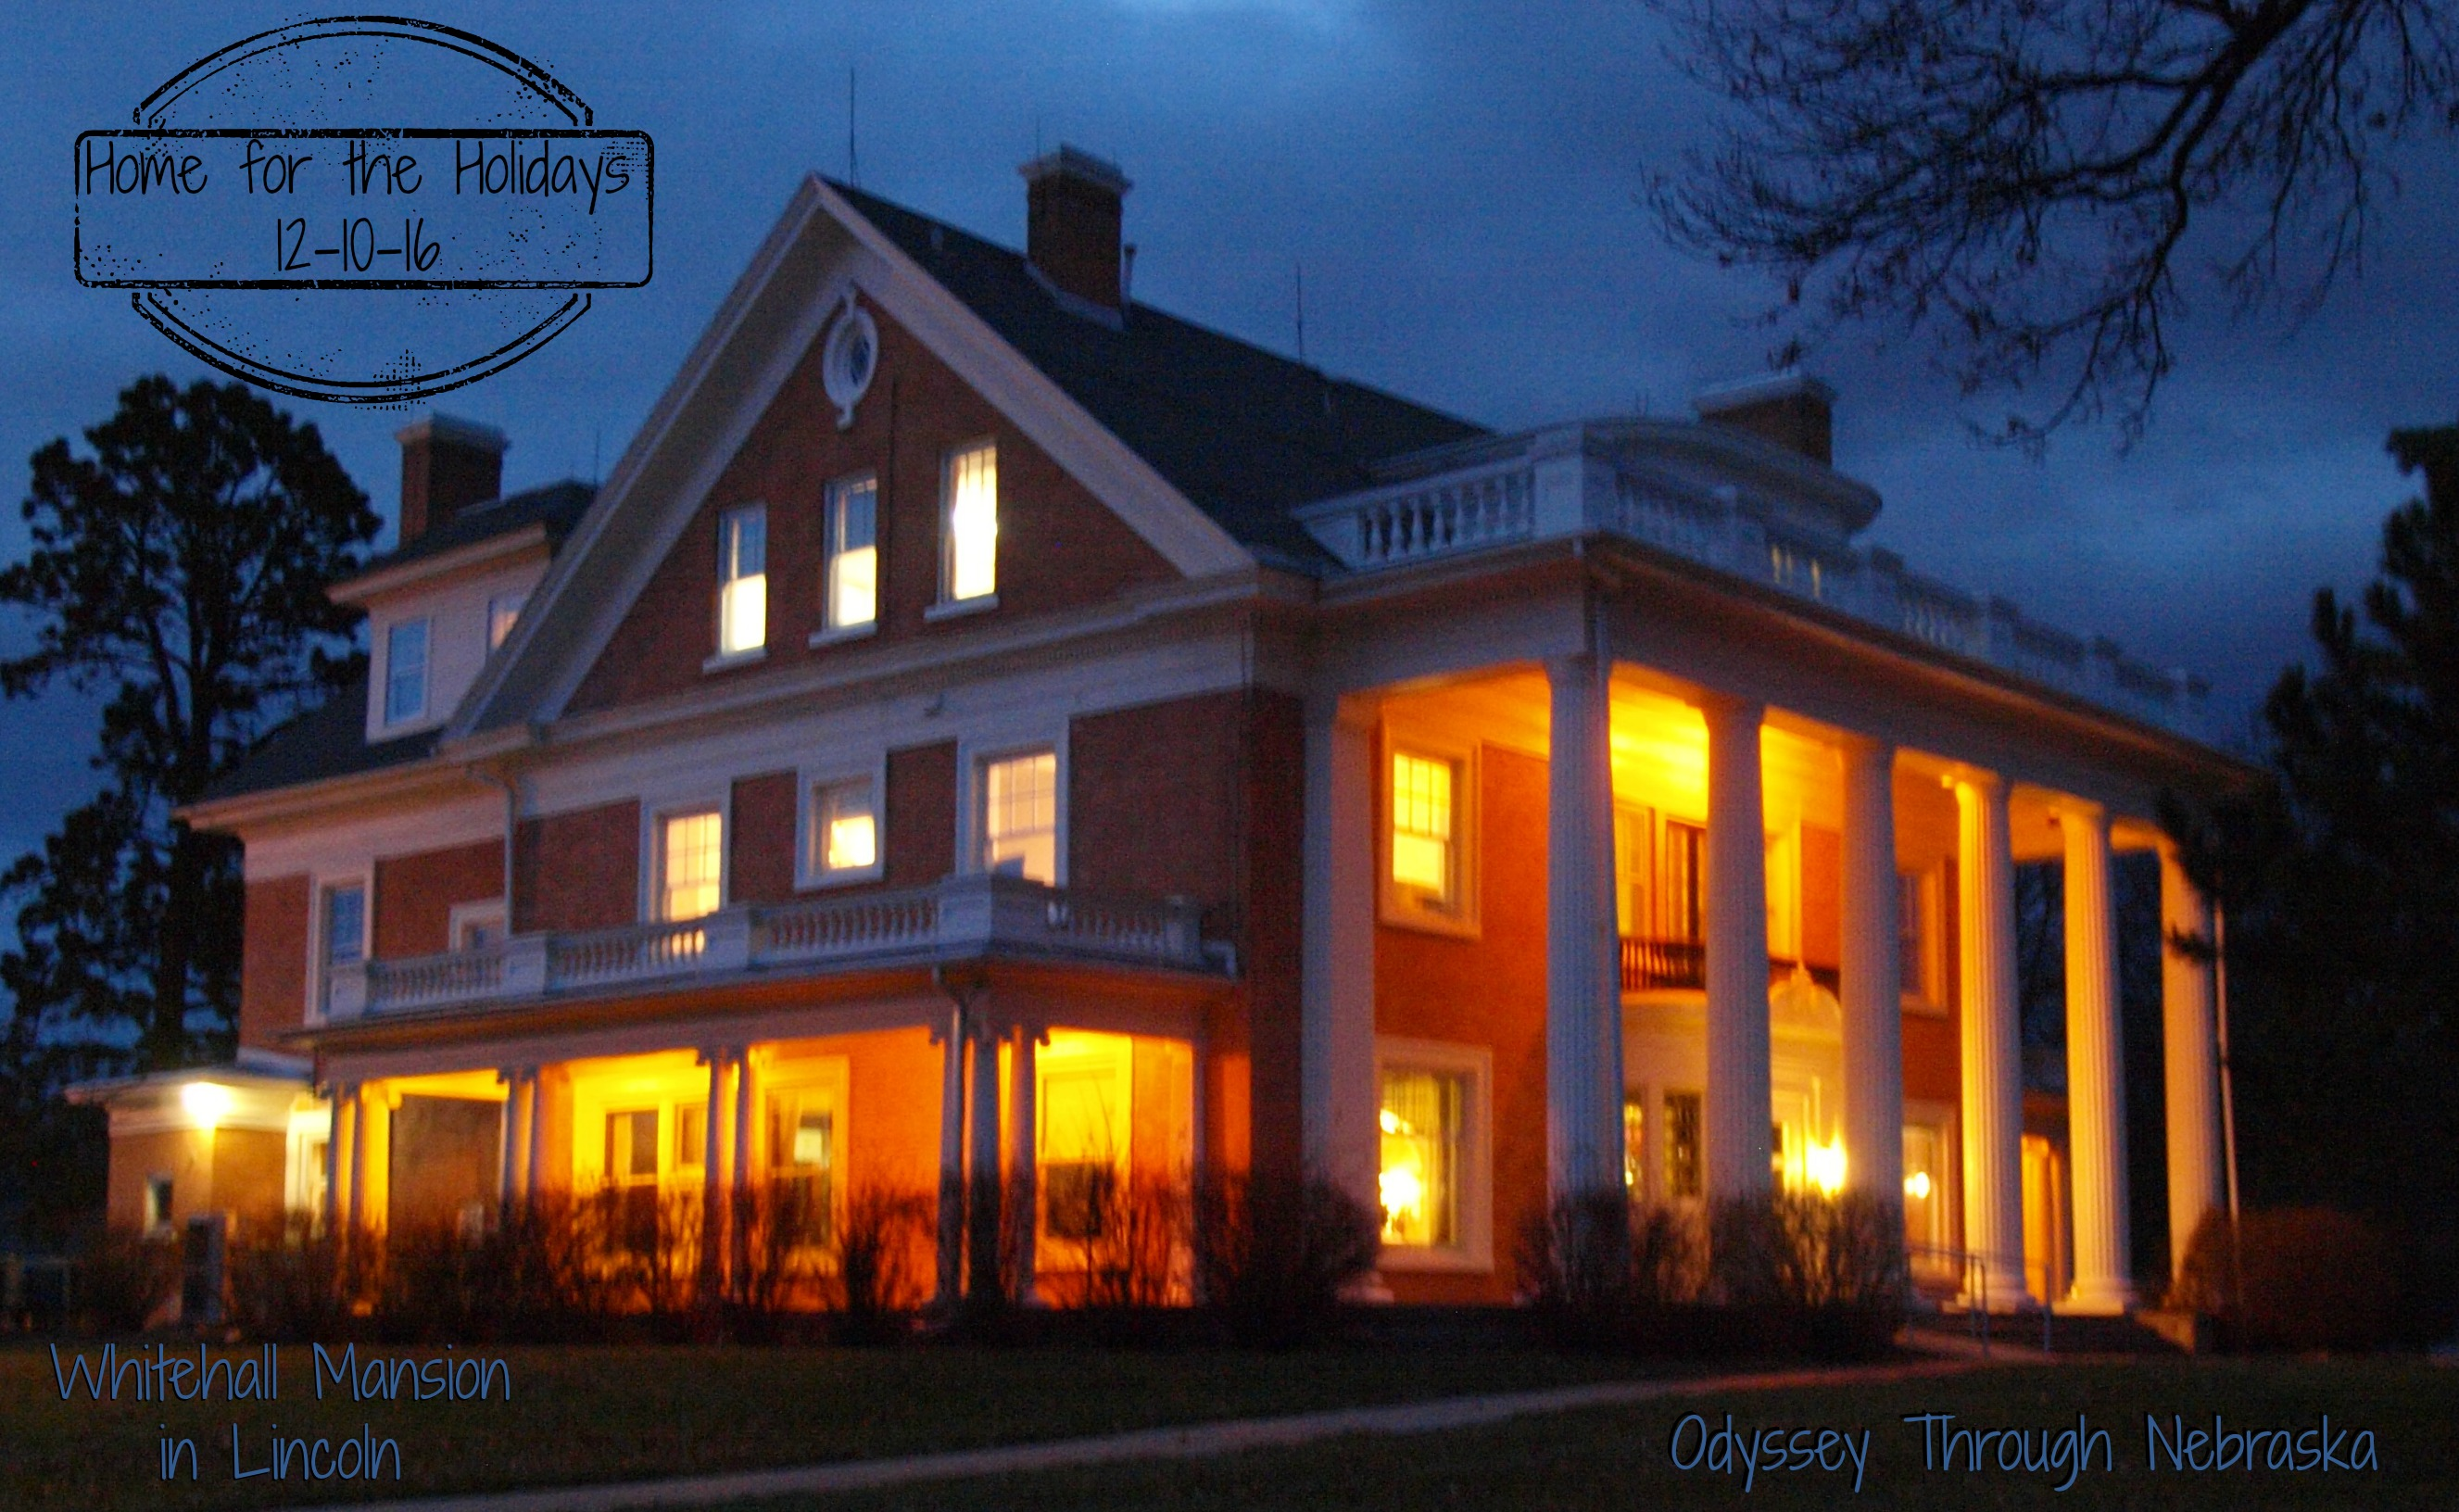 Whitehall Mansion in Lincoln at nighttime